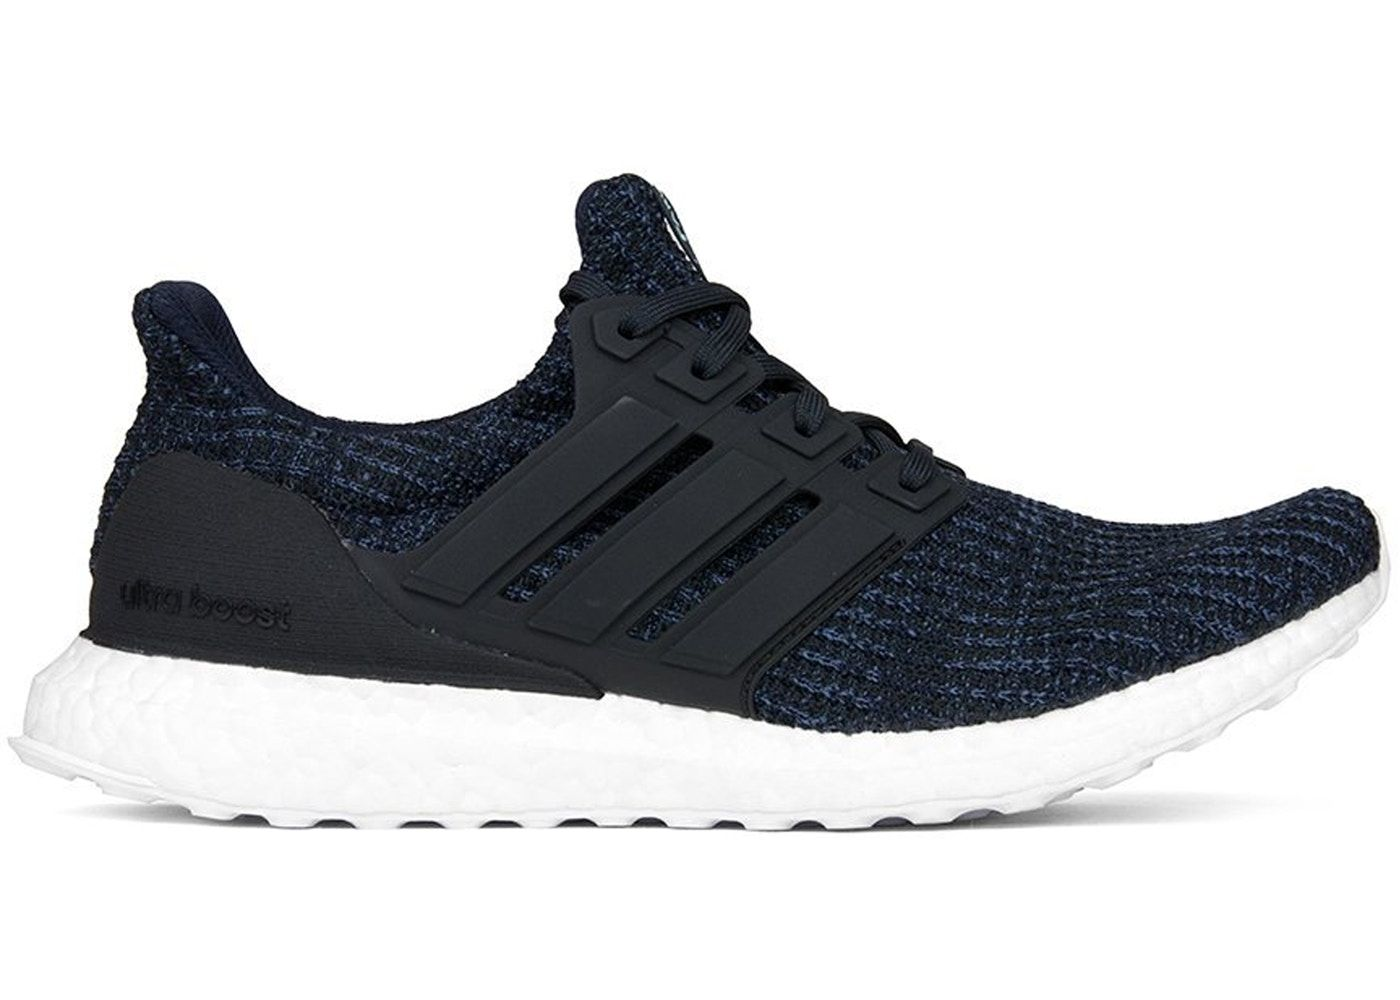 c38a32bf Check out the adidas Ultra Boost 4.0 Parley Legend Ink available on StockX